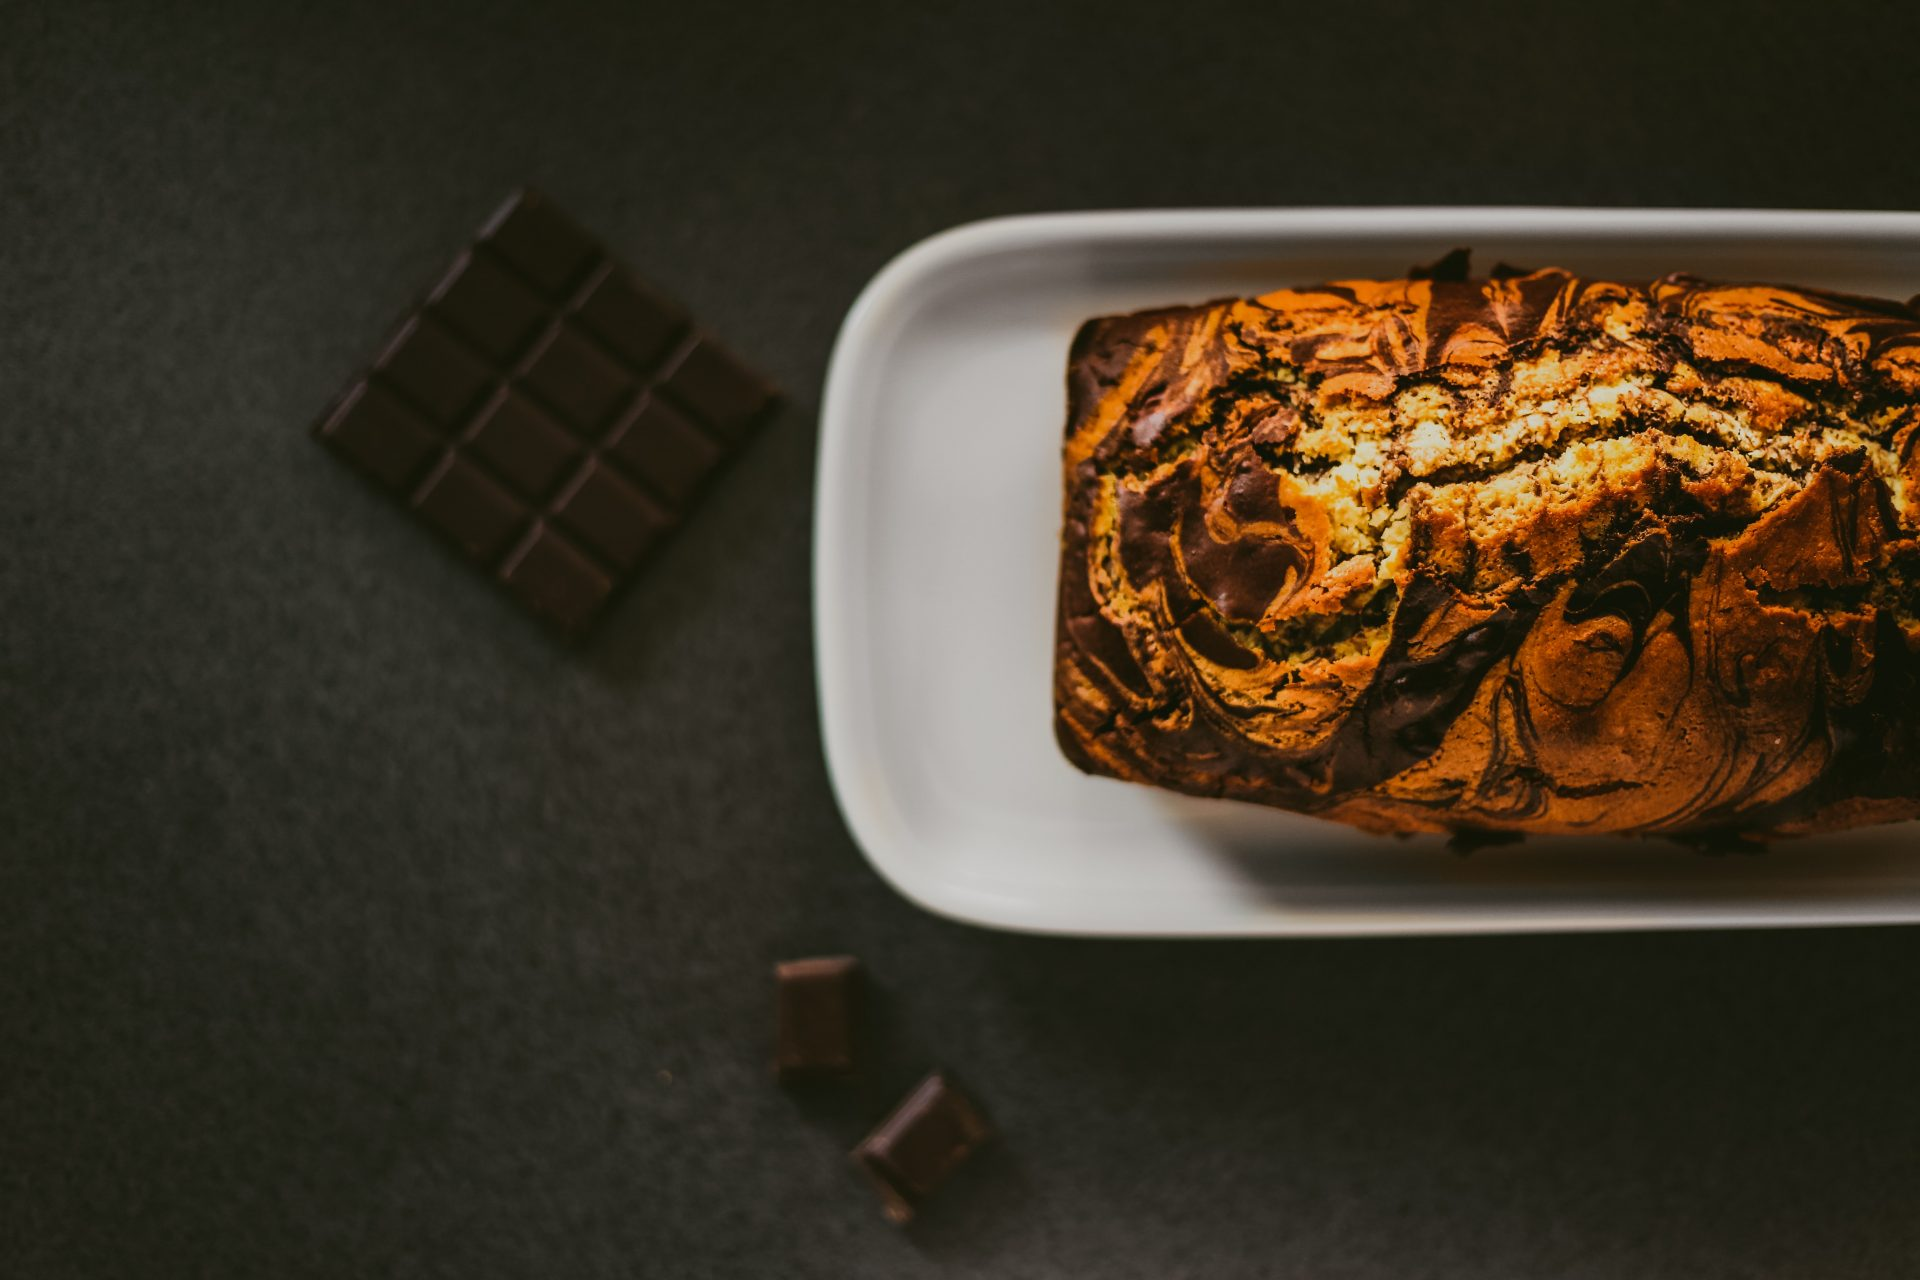 baked-goods-bread-chocolate-890578 (2)